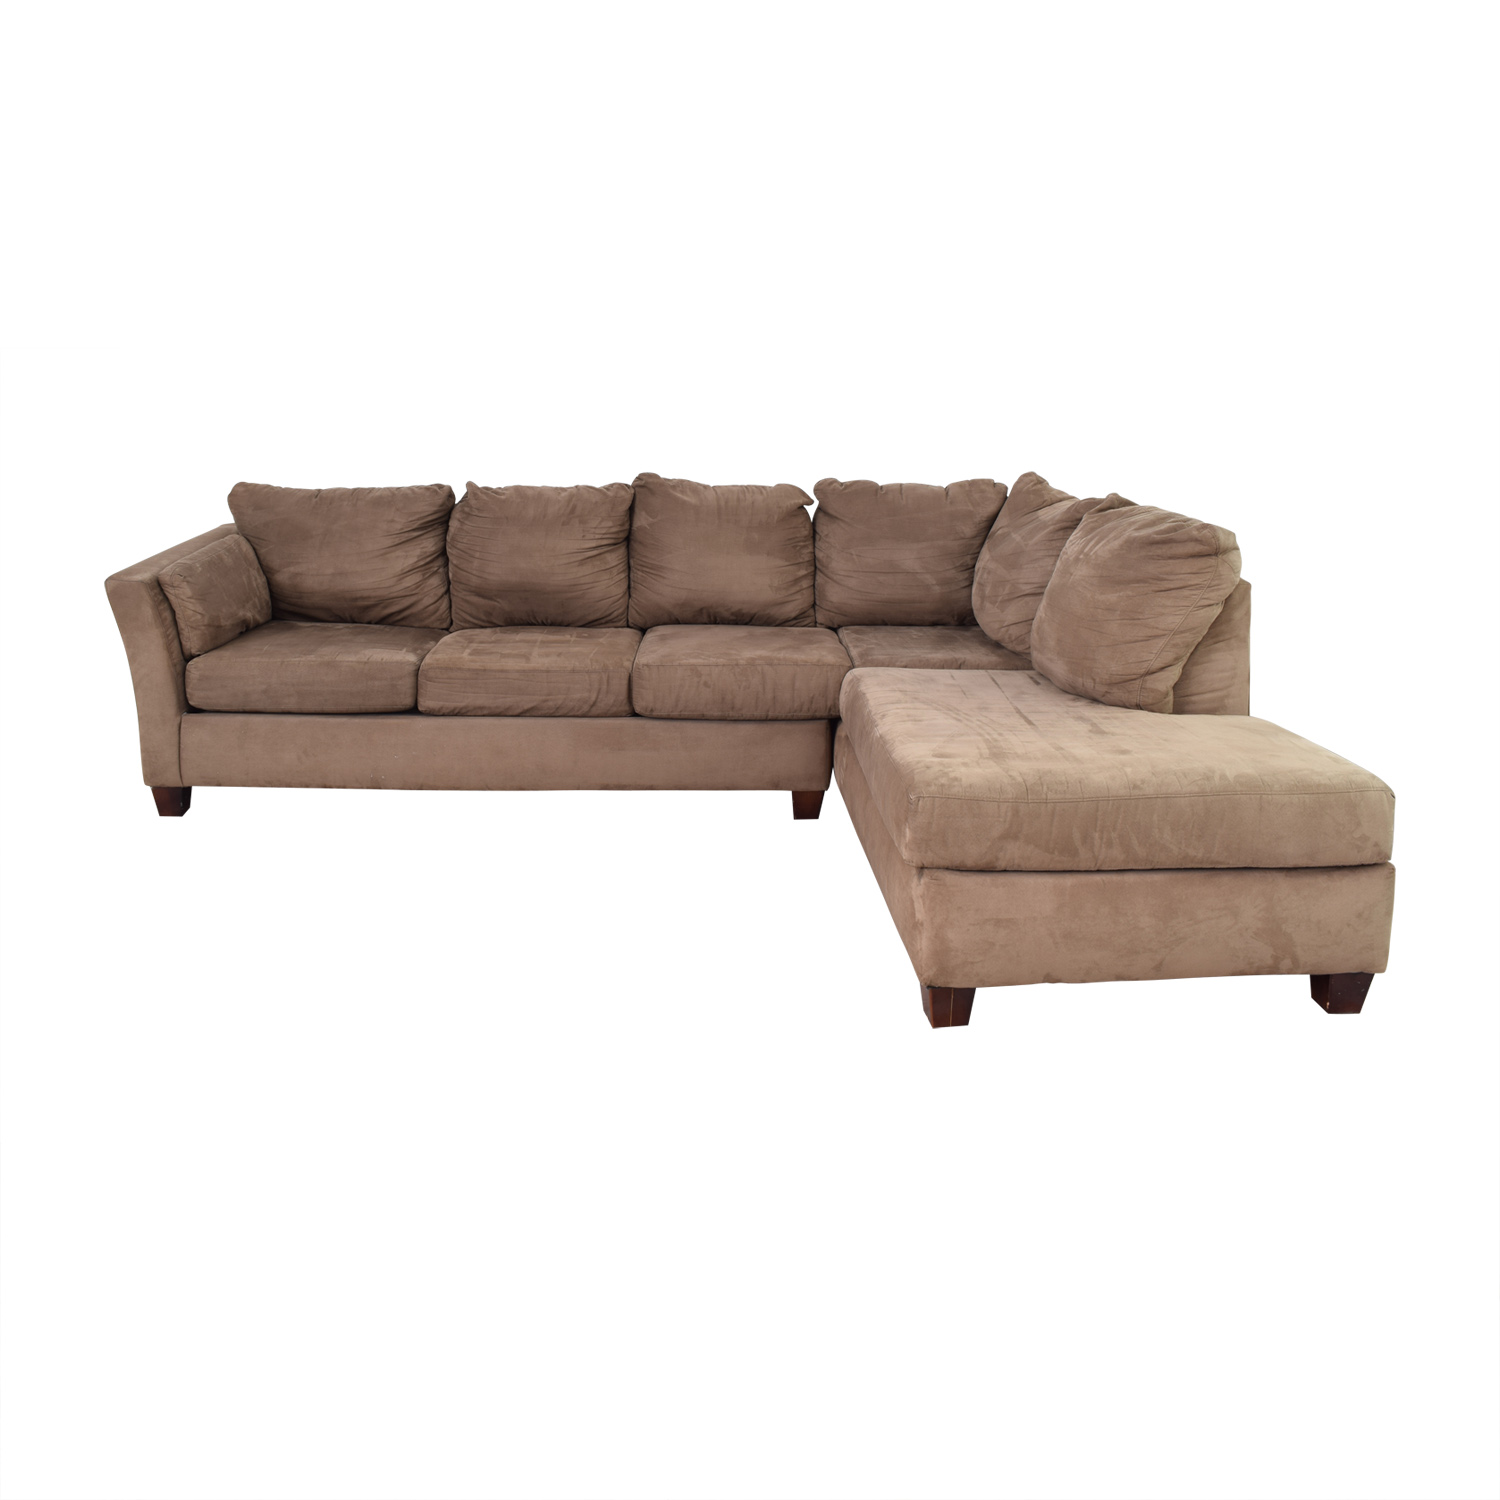 77 Off American Furniture Warehouse American Furniture L Shaped